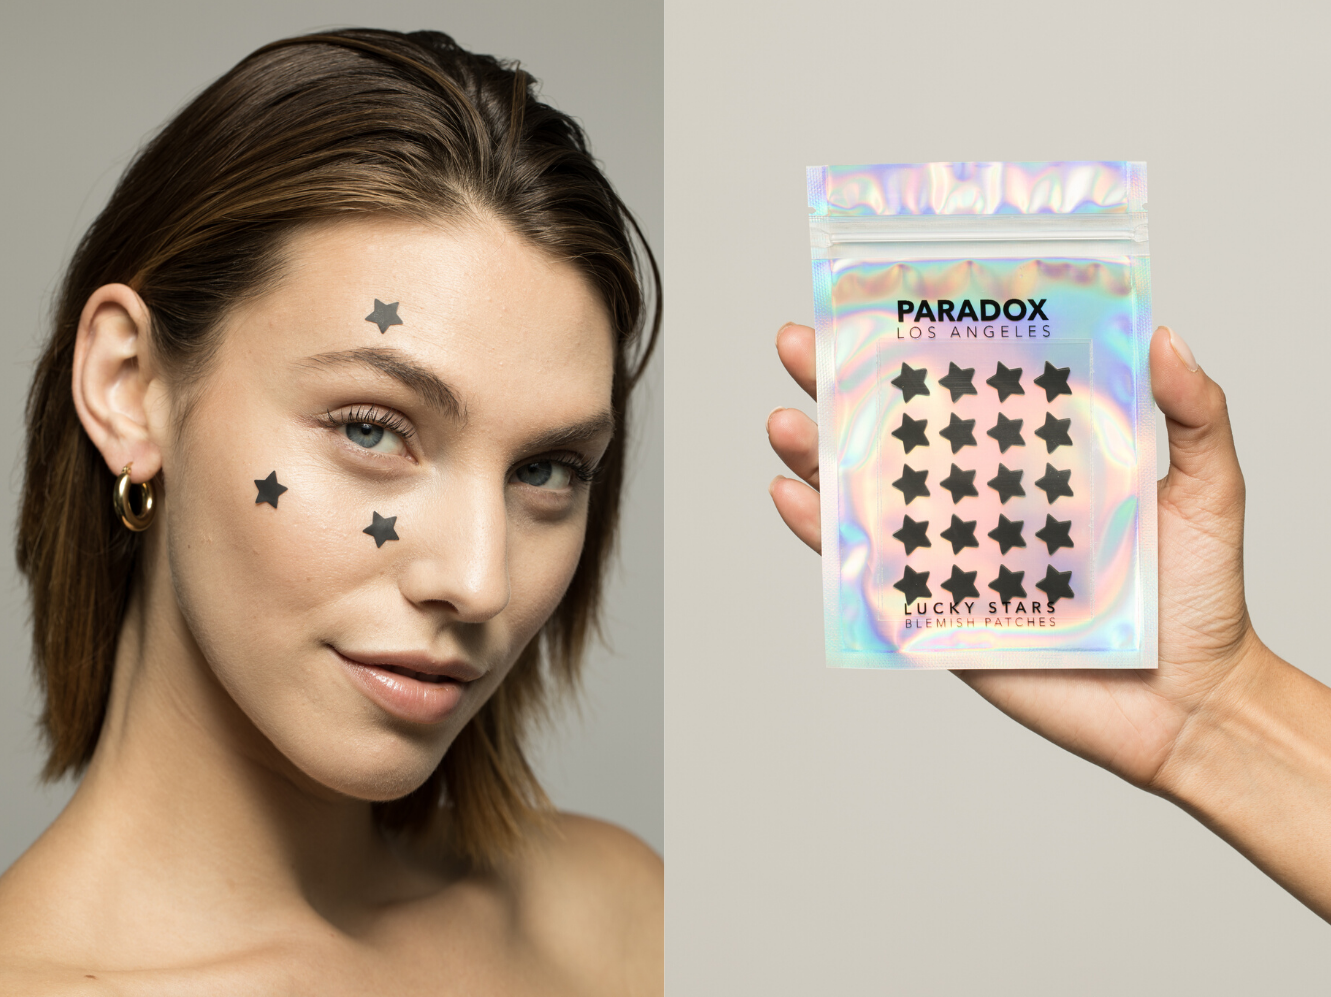 Paradox - Natural Skincare & Beauty - Lucky Star Blemish Patches